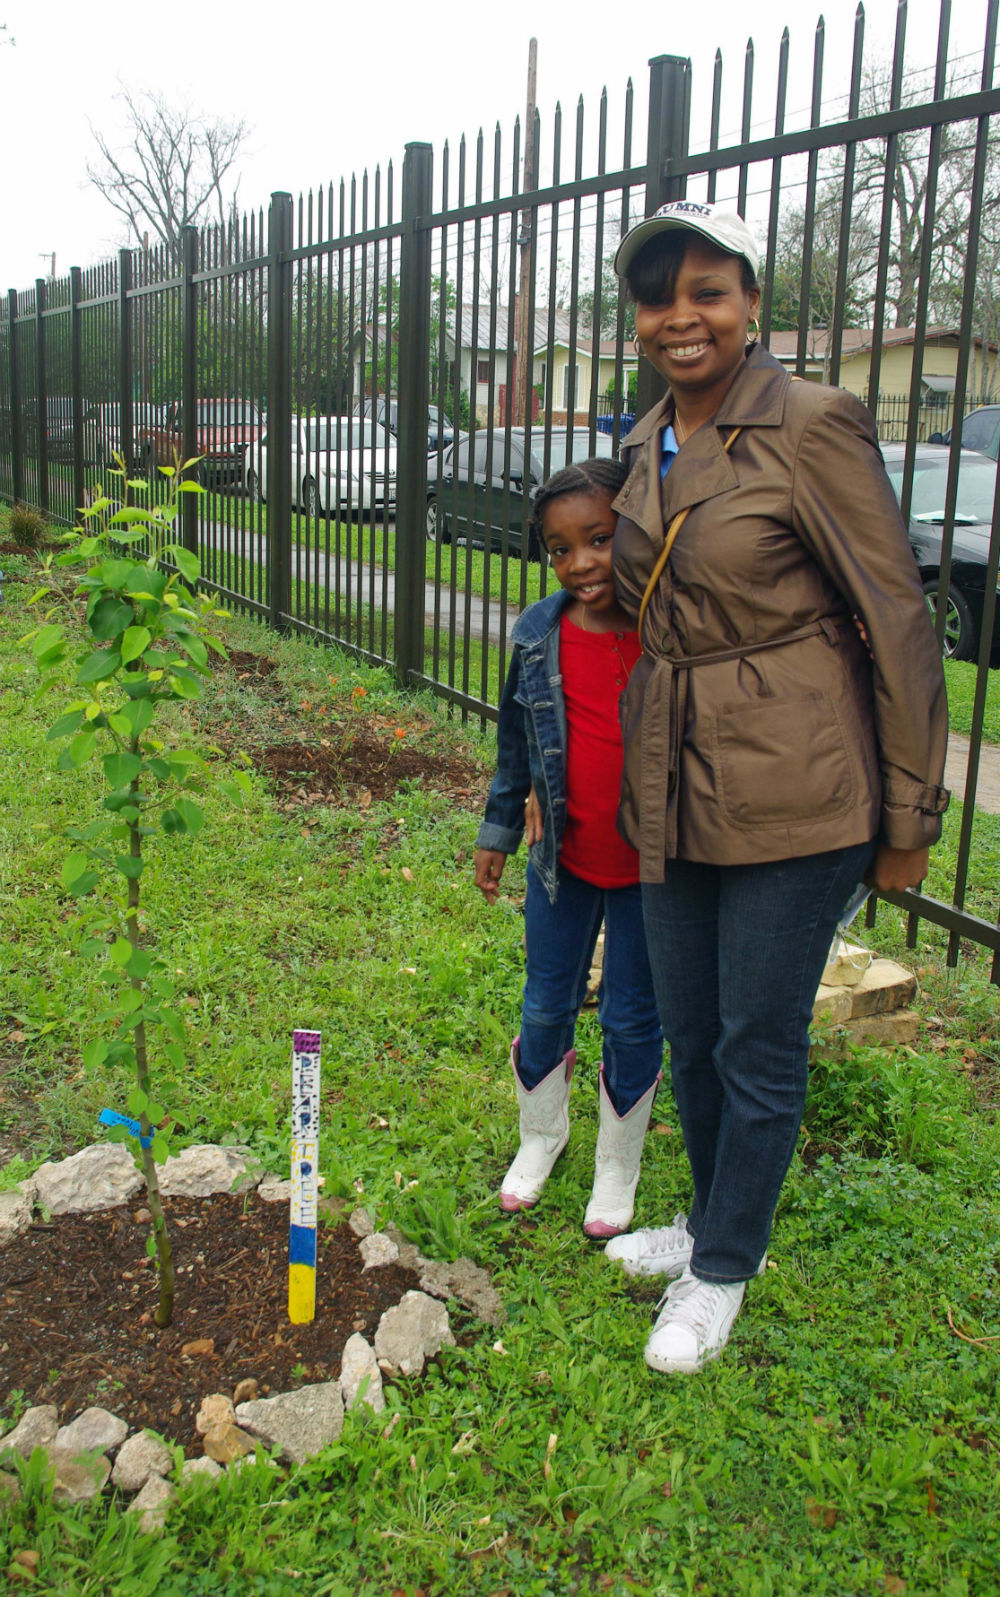 Ivy Taylor with daughter Morgan at the Eastside Sprout Community Garden. Photo by Juan Garcia.